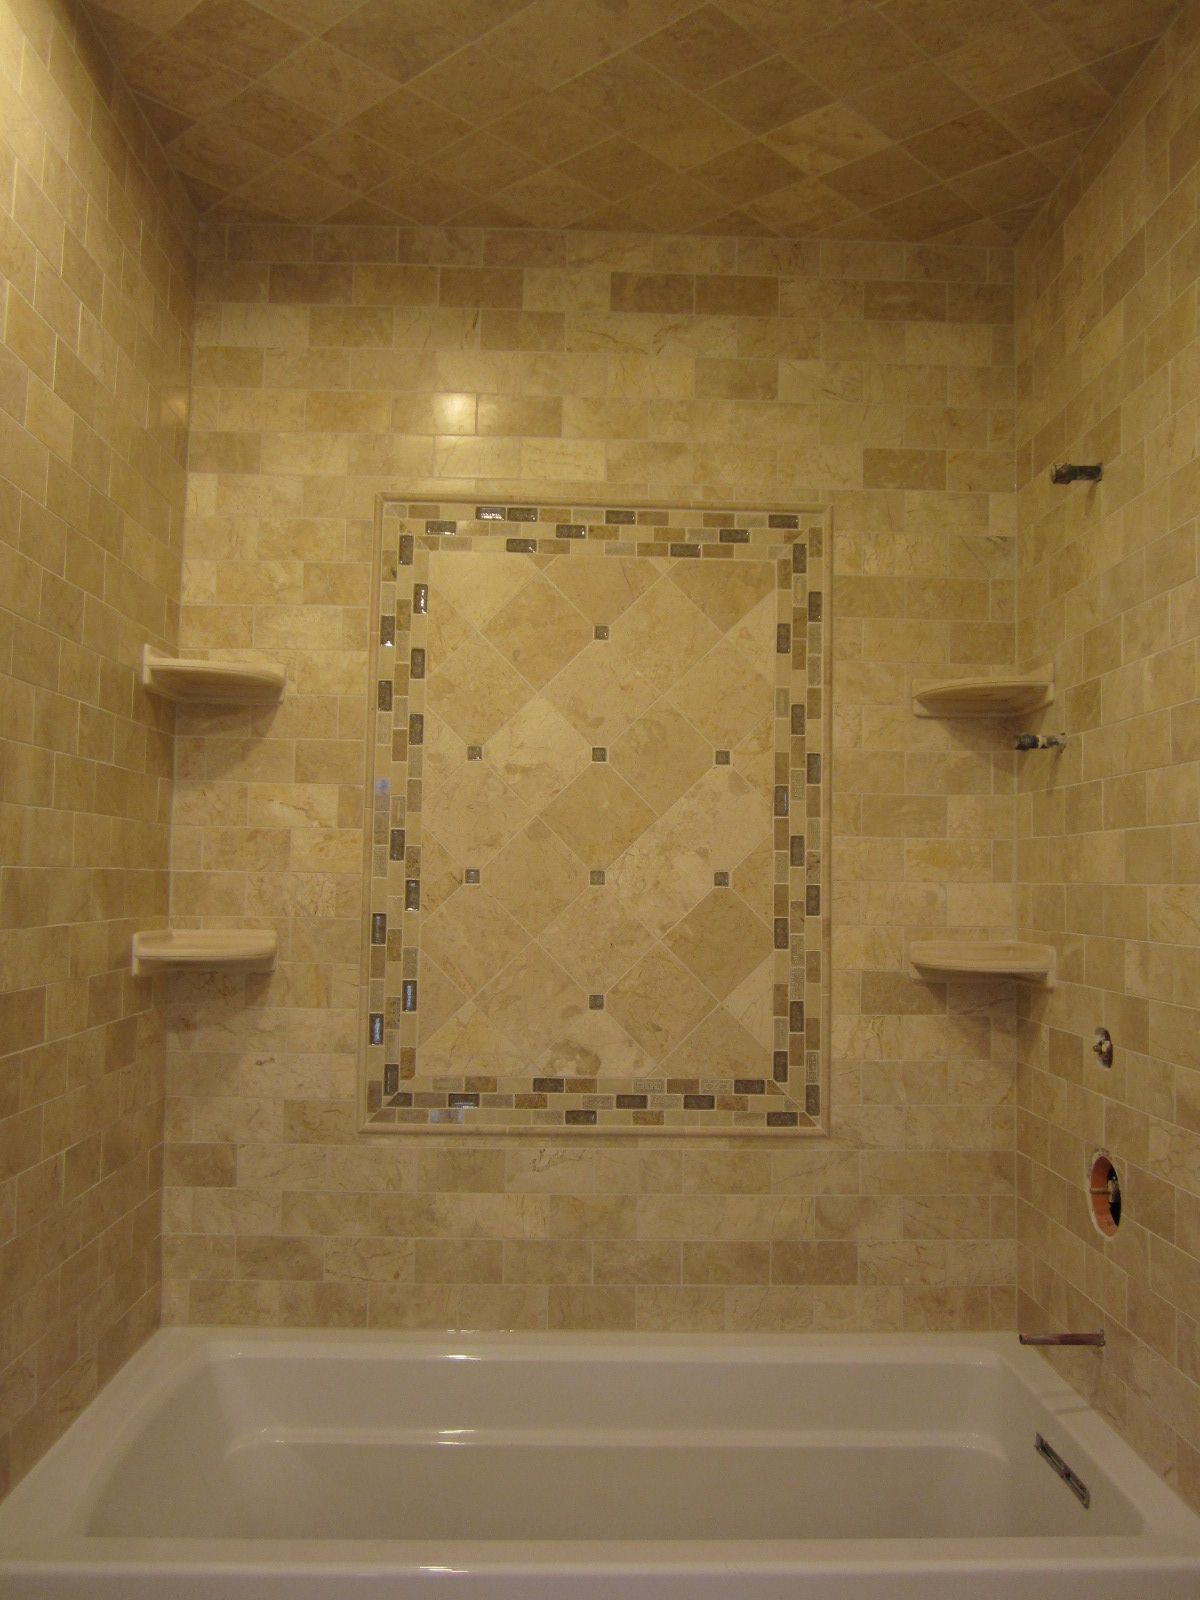 Travertine Subway Tiles And 6x6 With Sonoma Tile Accent Pencil Liners In A Shower Diagonal